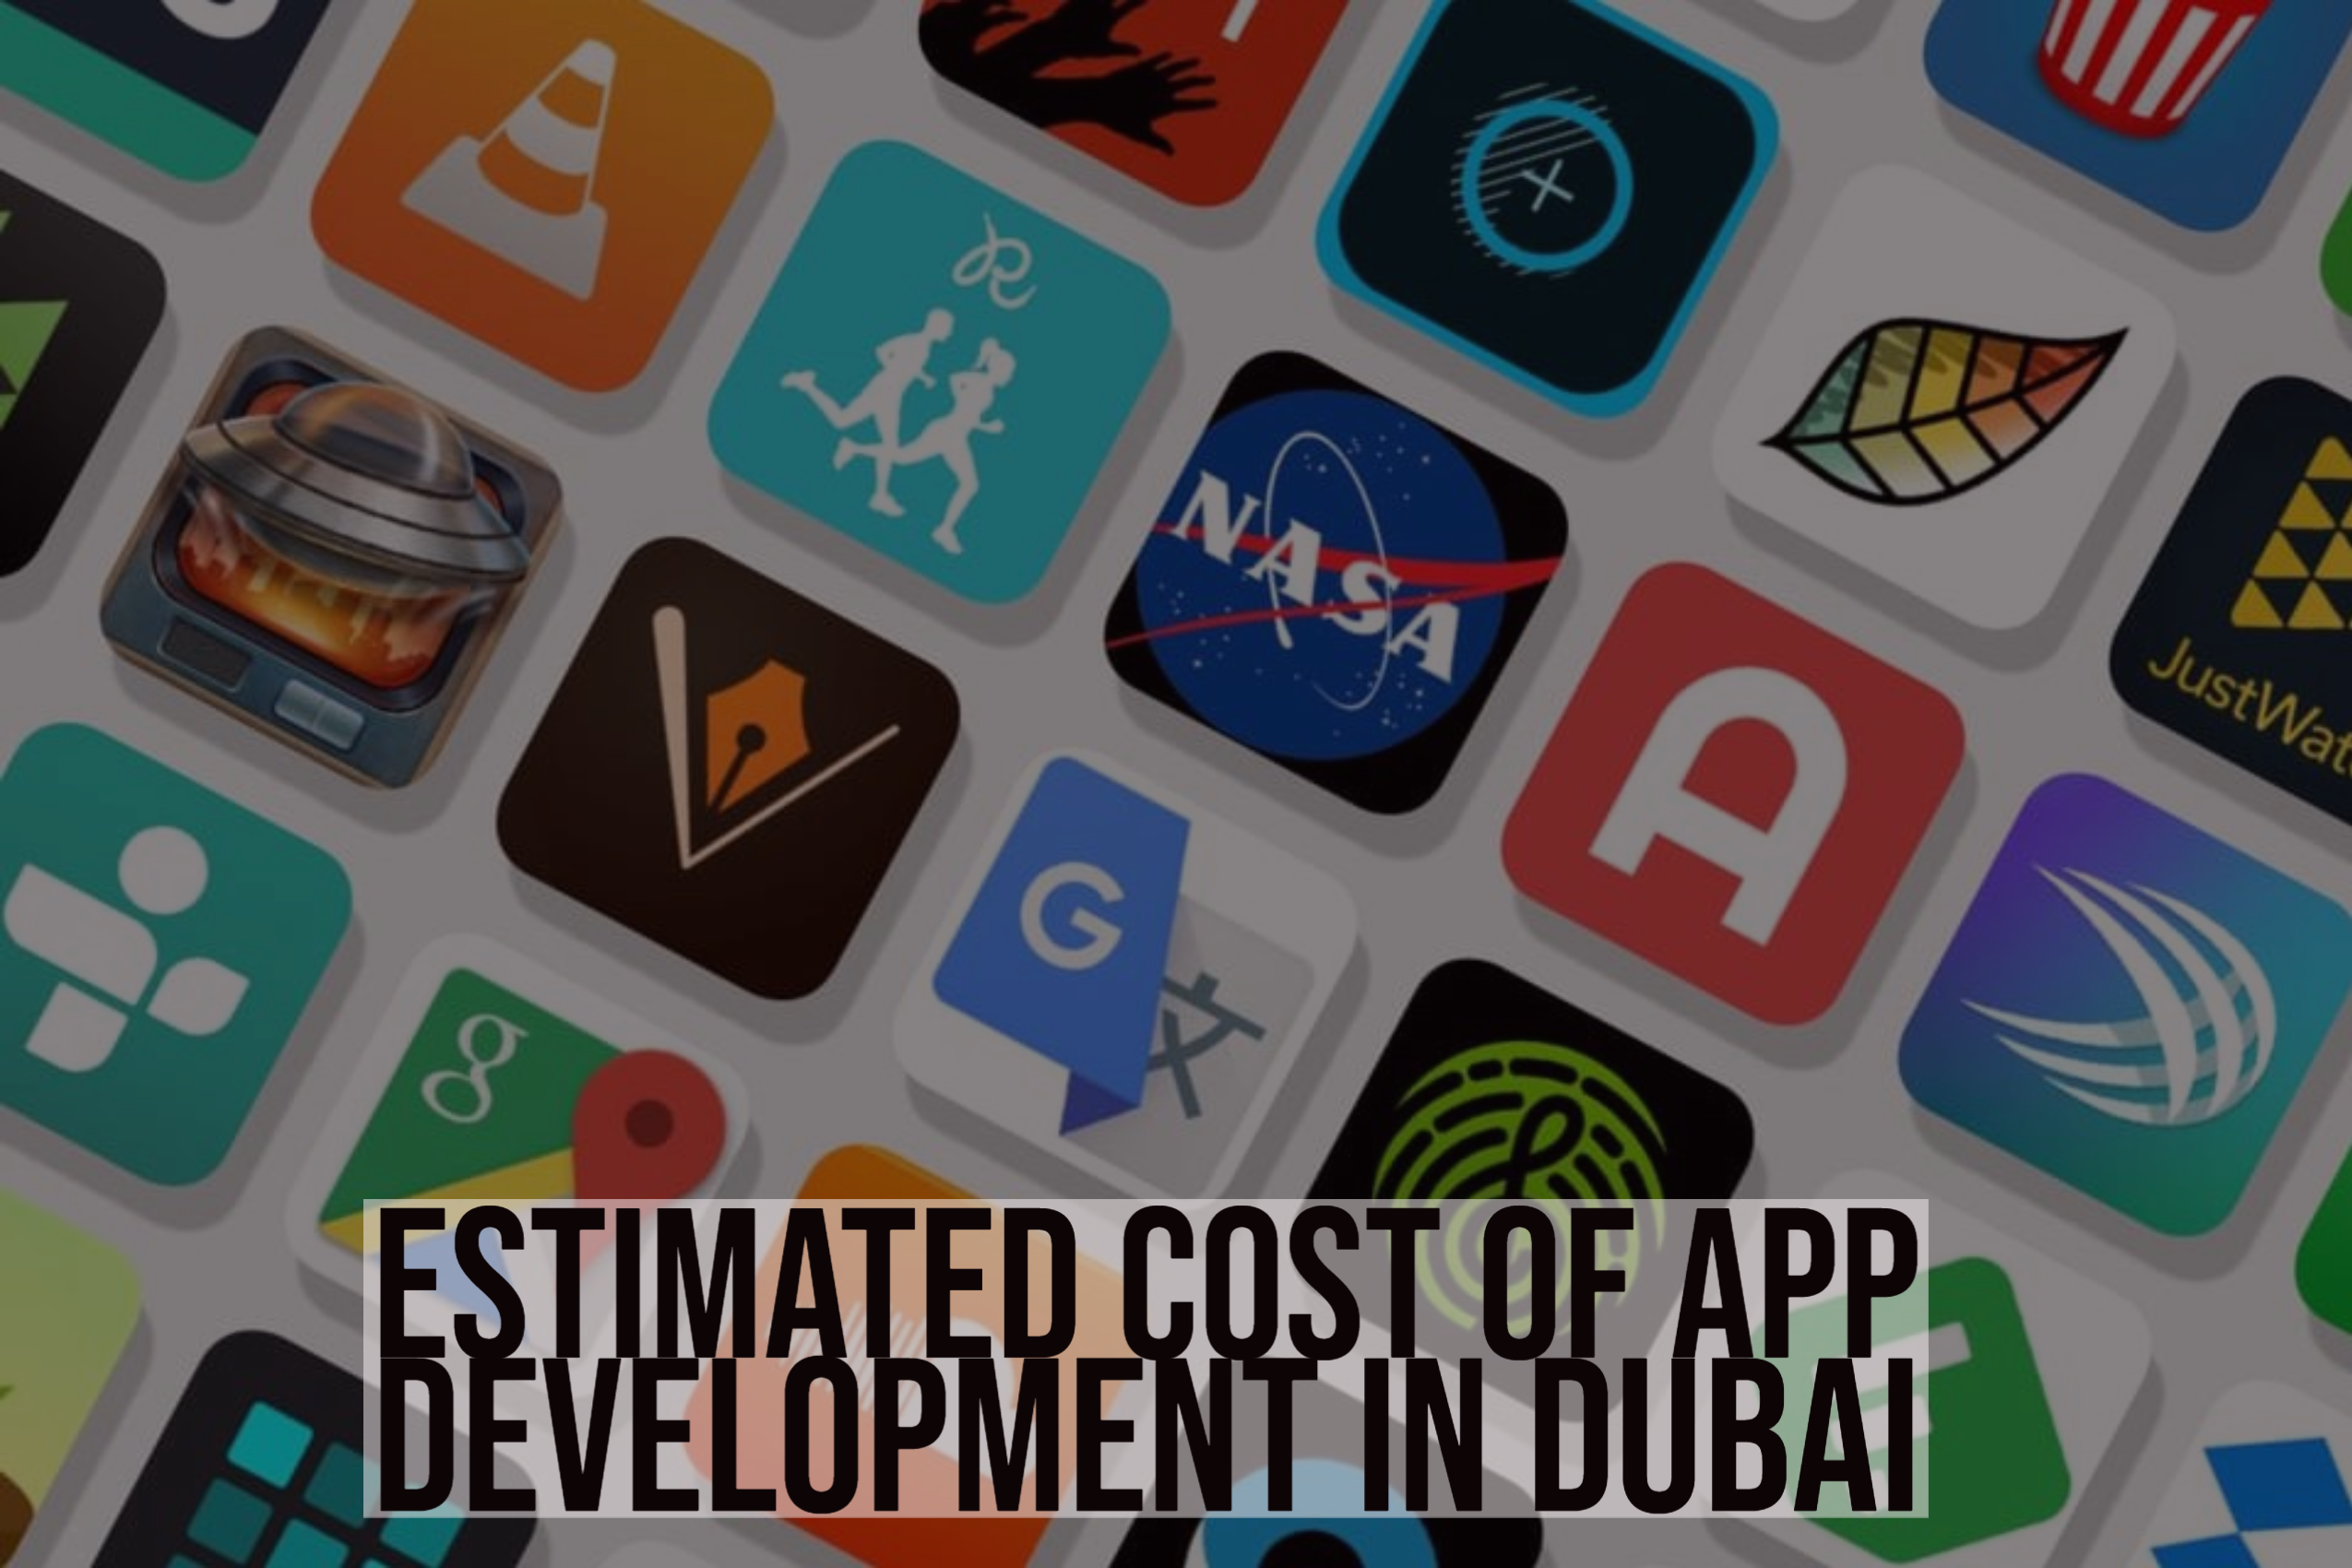 Estimated Cost of App Development in Dubai